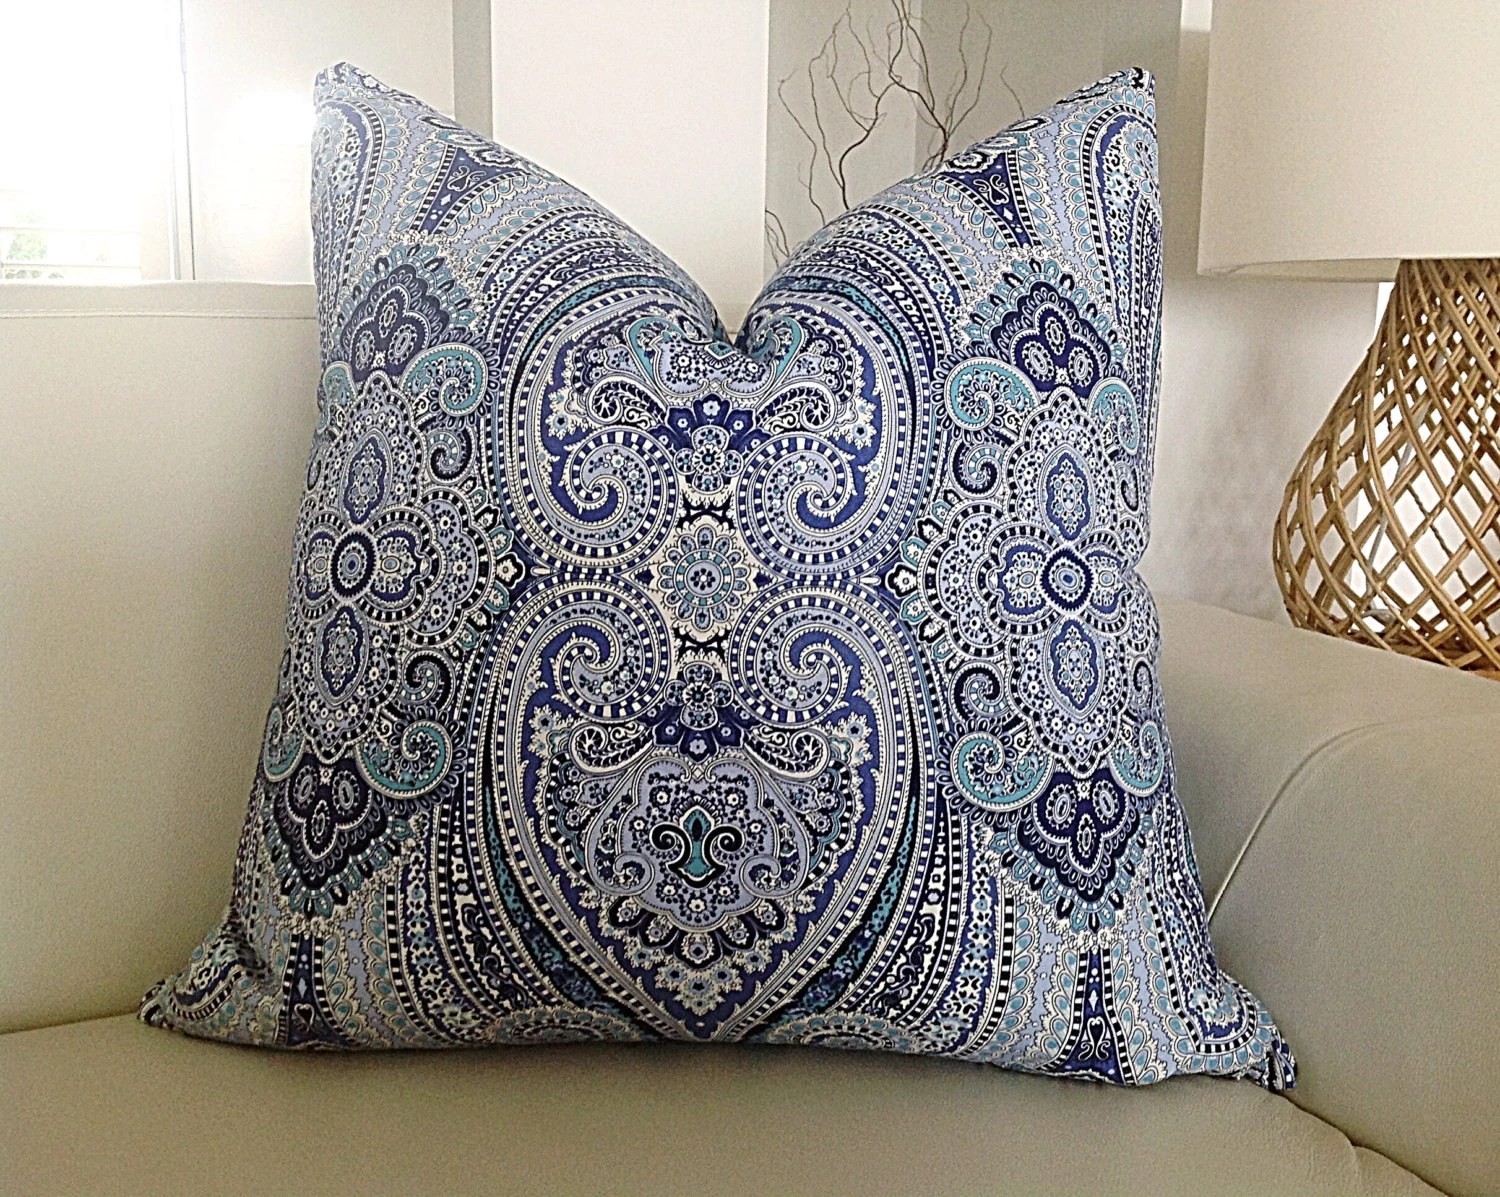 Boho Cushions Australia Cushions Paisley Pizzazz Boho Cushion Cover Blue And White